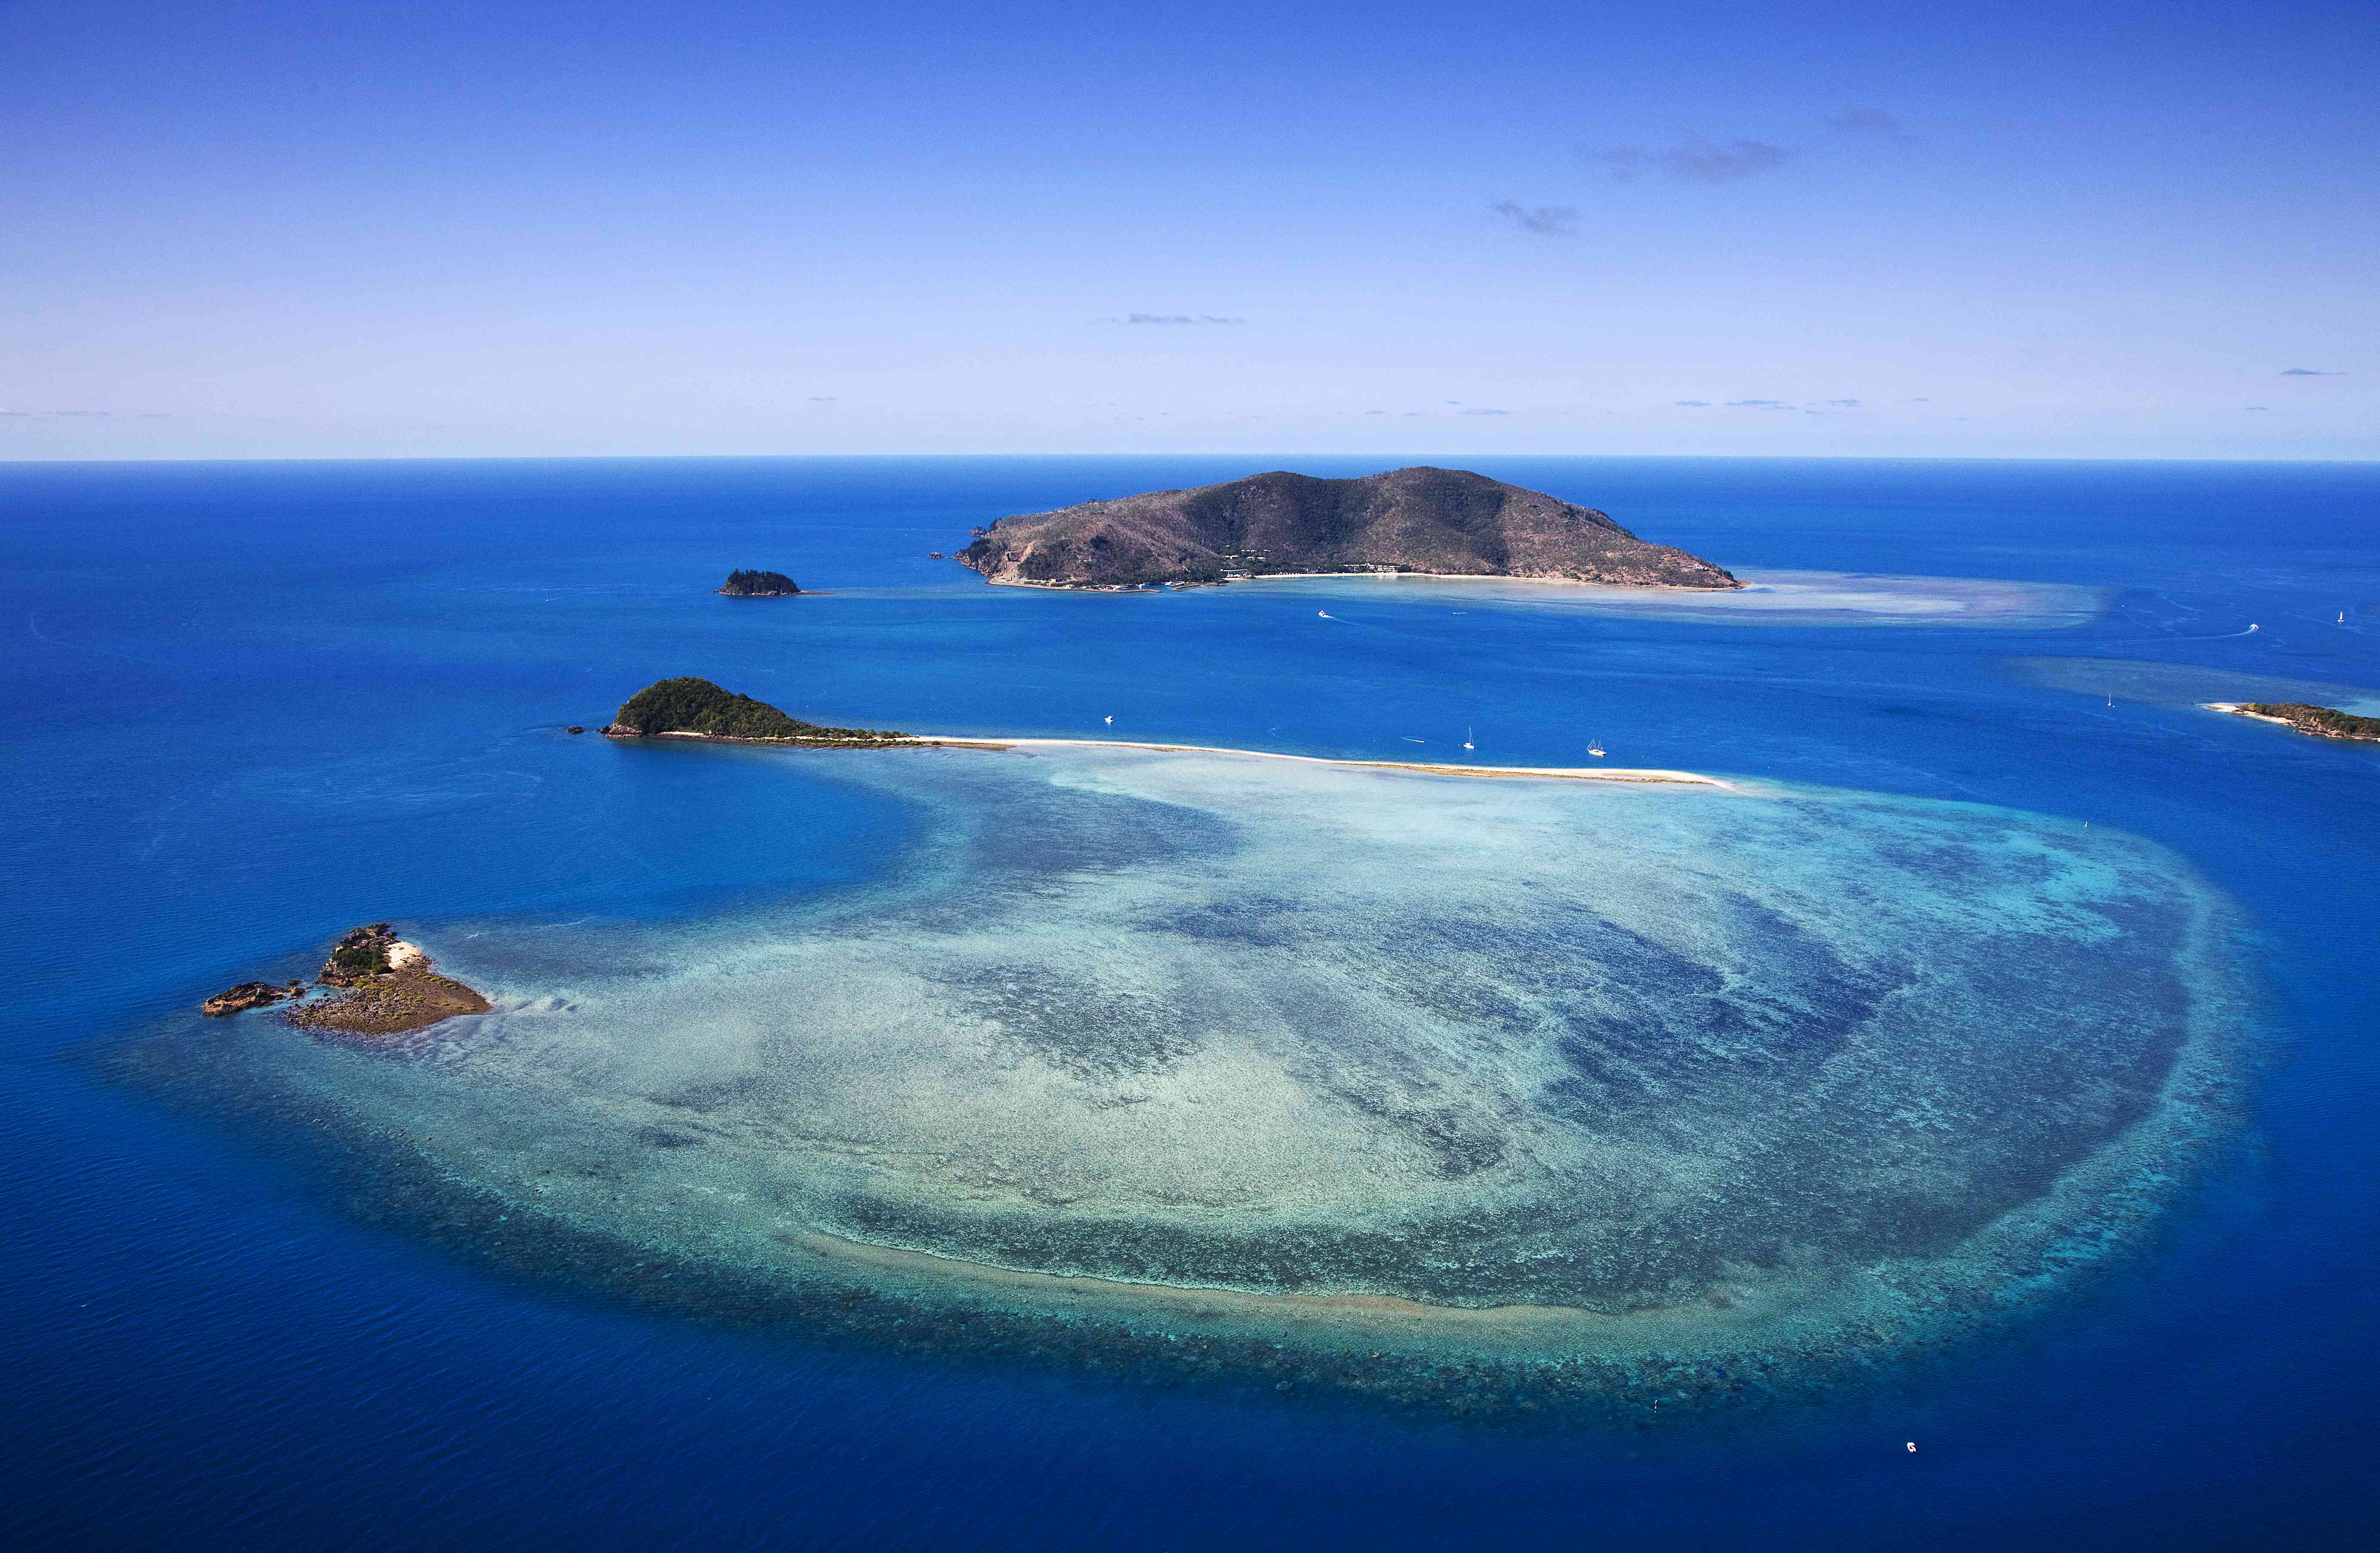 Aerial view of Hayman Island and Langford Reef, Whitsundays, Queensland